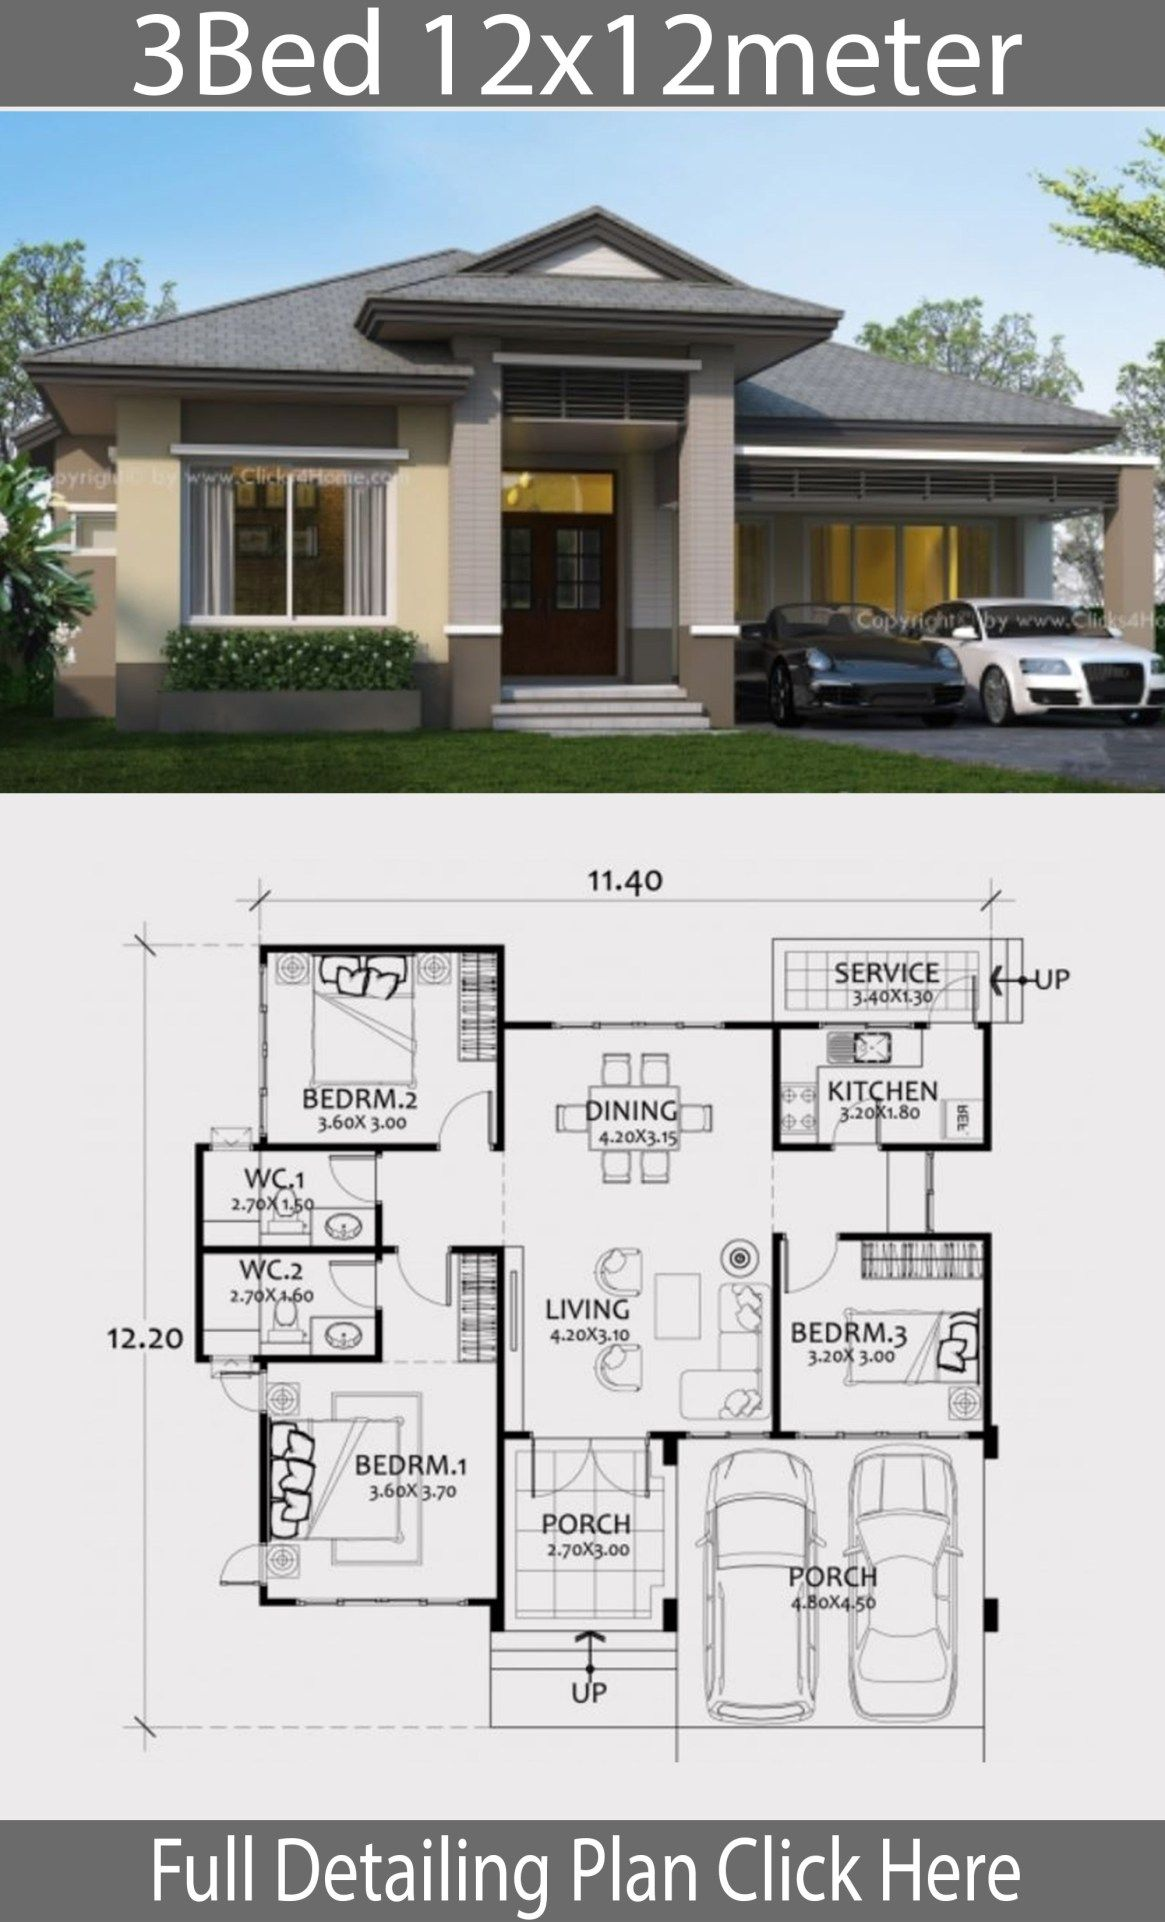 Home Design Plan 12x12m With 3 Bedrooms Home Design With Plansearch House Construction Plan Bungalow Floor Plans Home Design Floor Plans